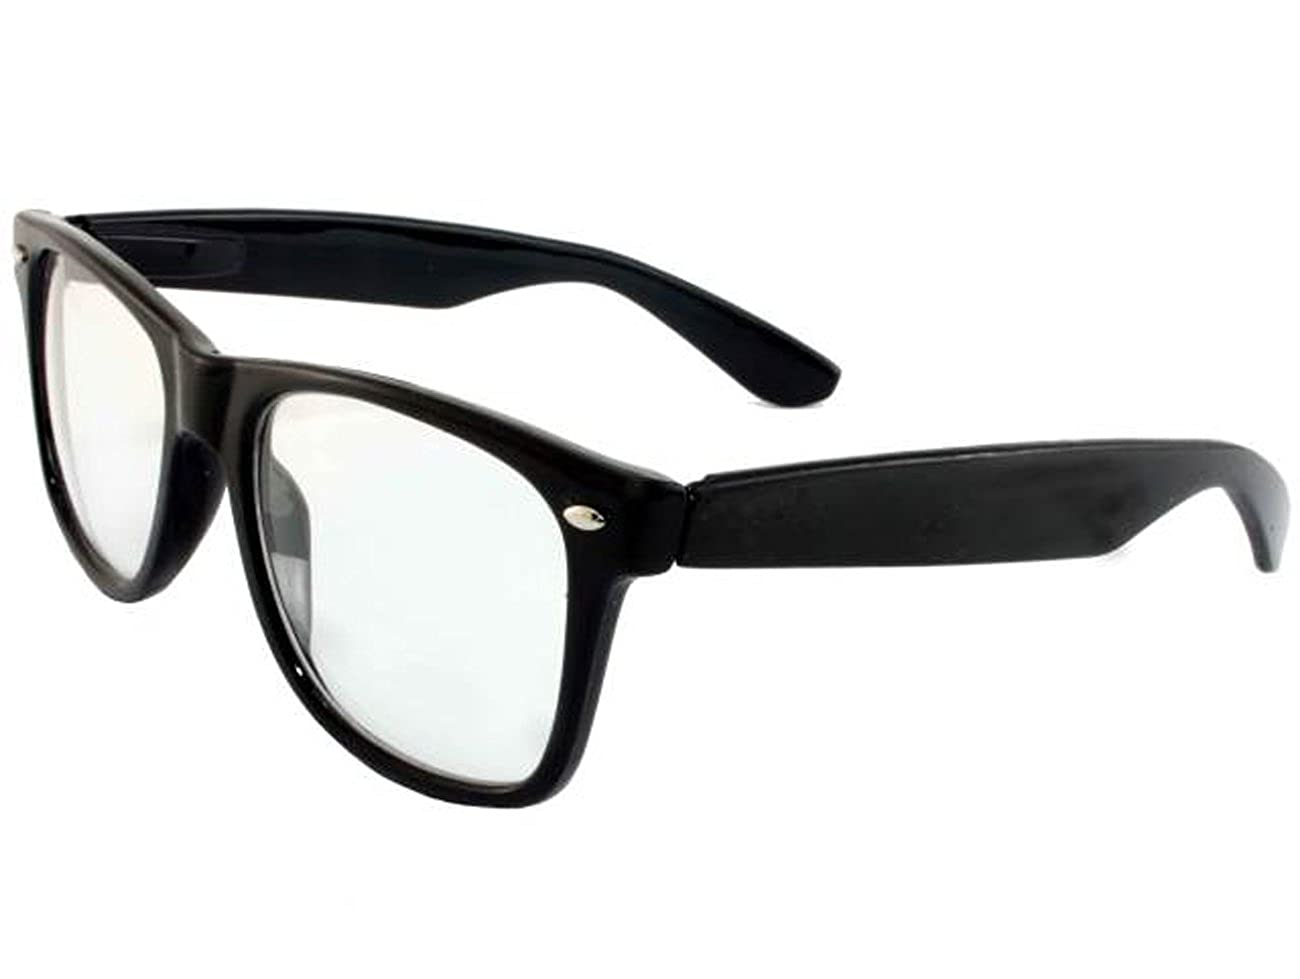 2c969c23e4 Retro Horned Rim Retro Classic Nerd Glasses Clear Lens Clear) MJ-8841C-black